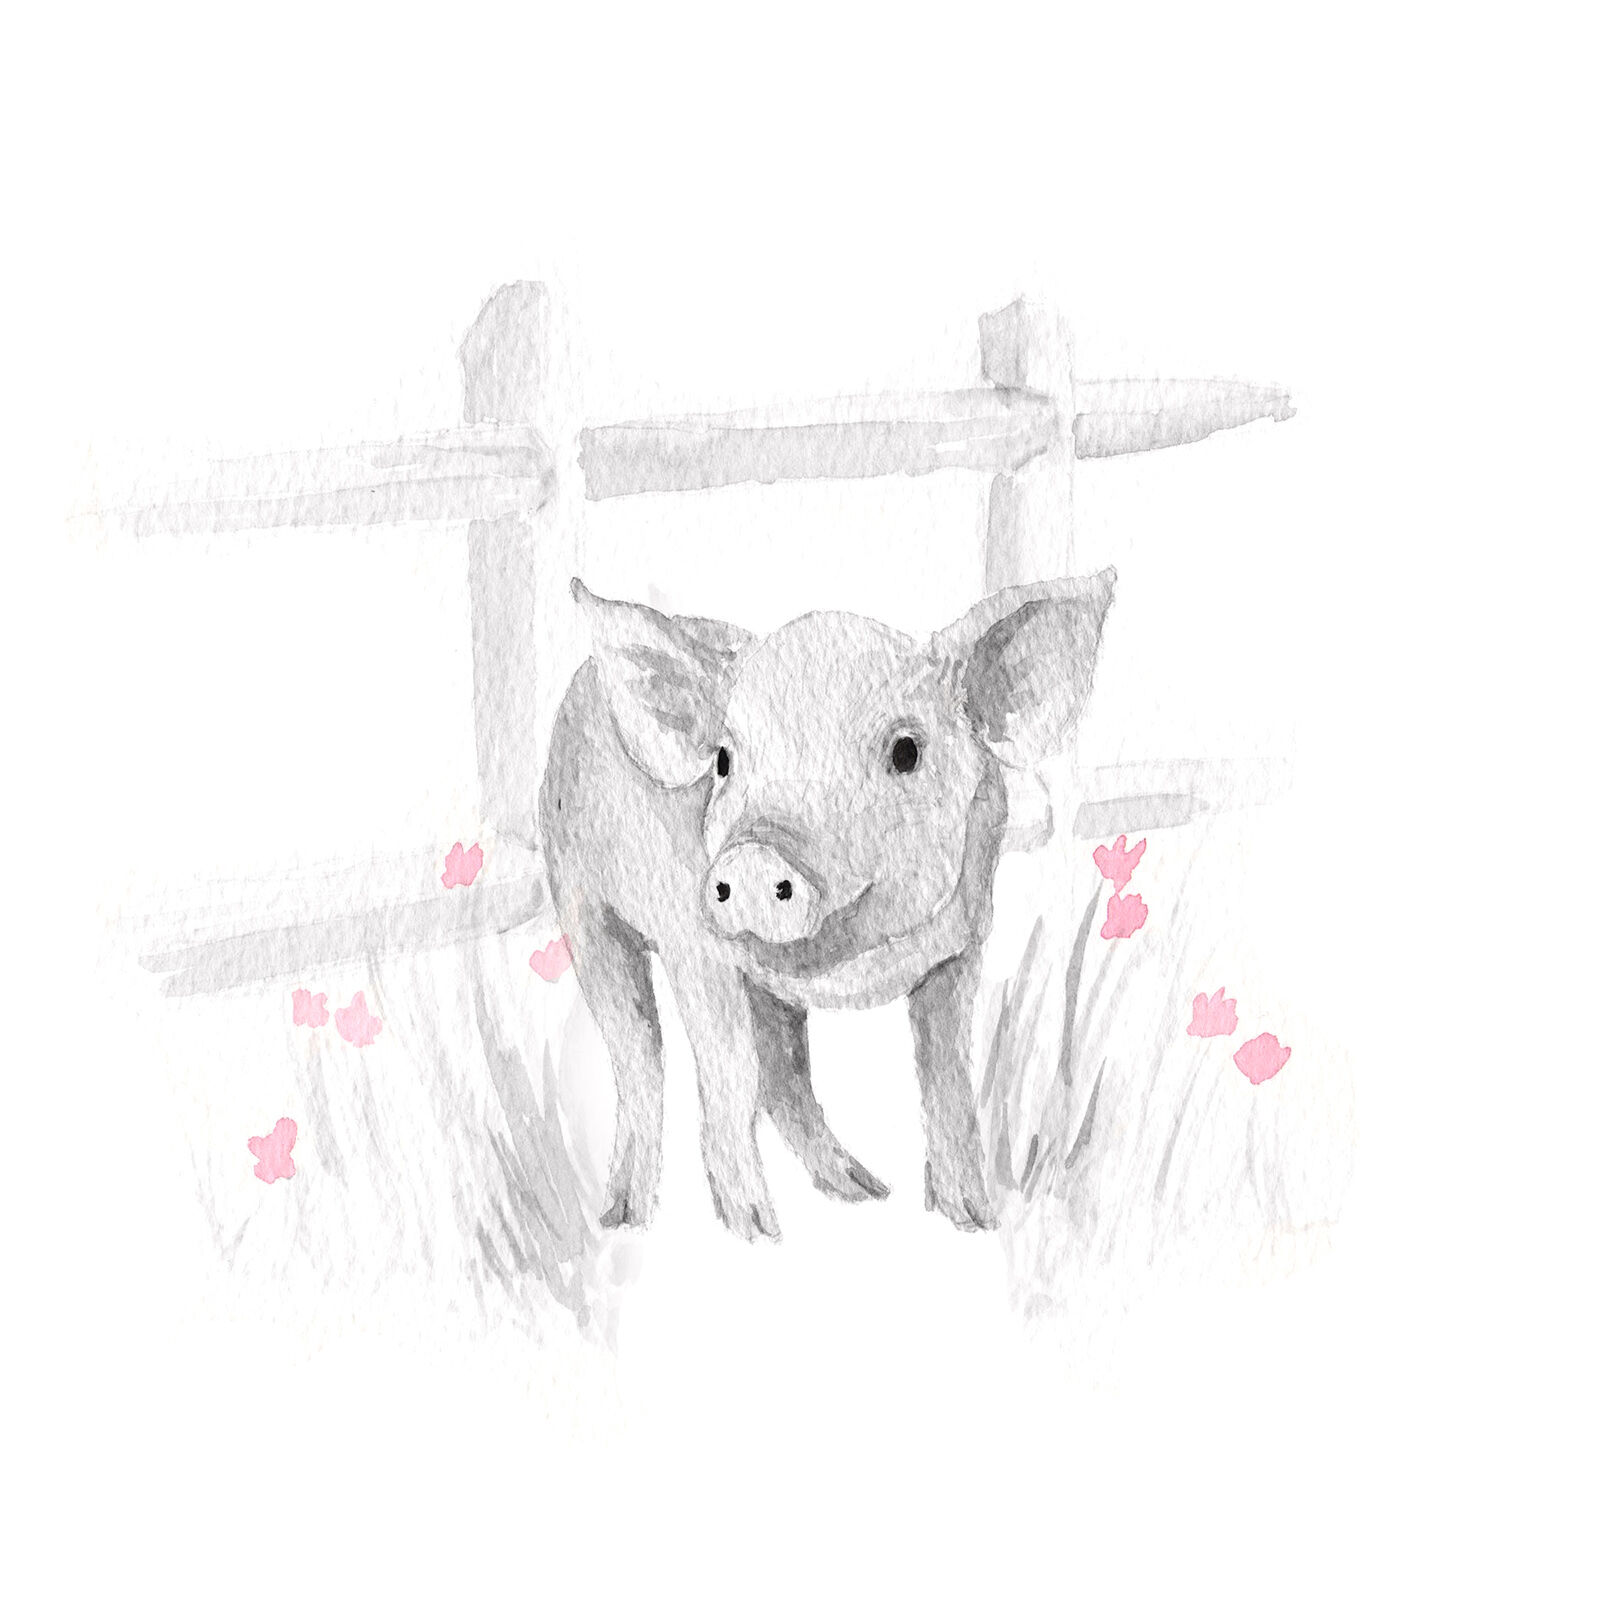 Framed Art Pig Sketch With Pink 11x14 In At Home